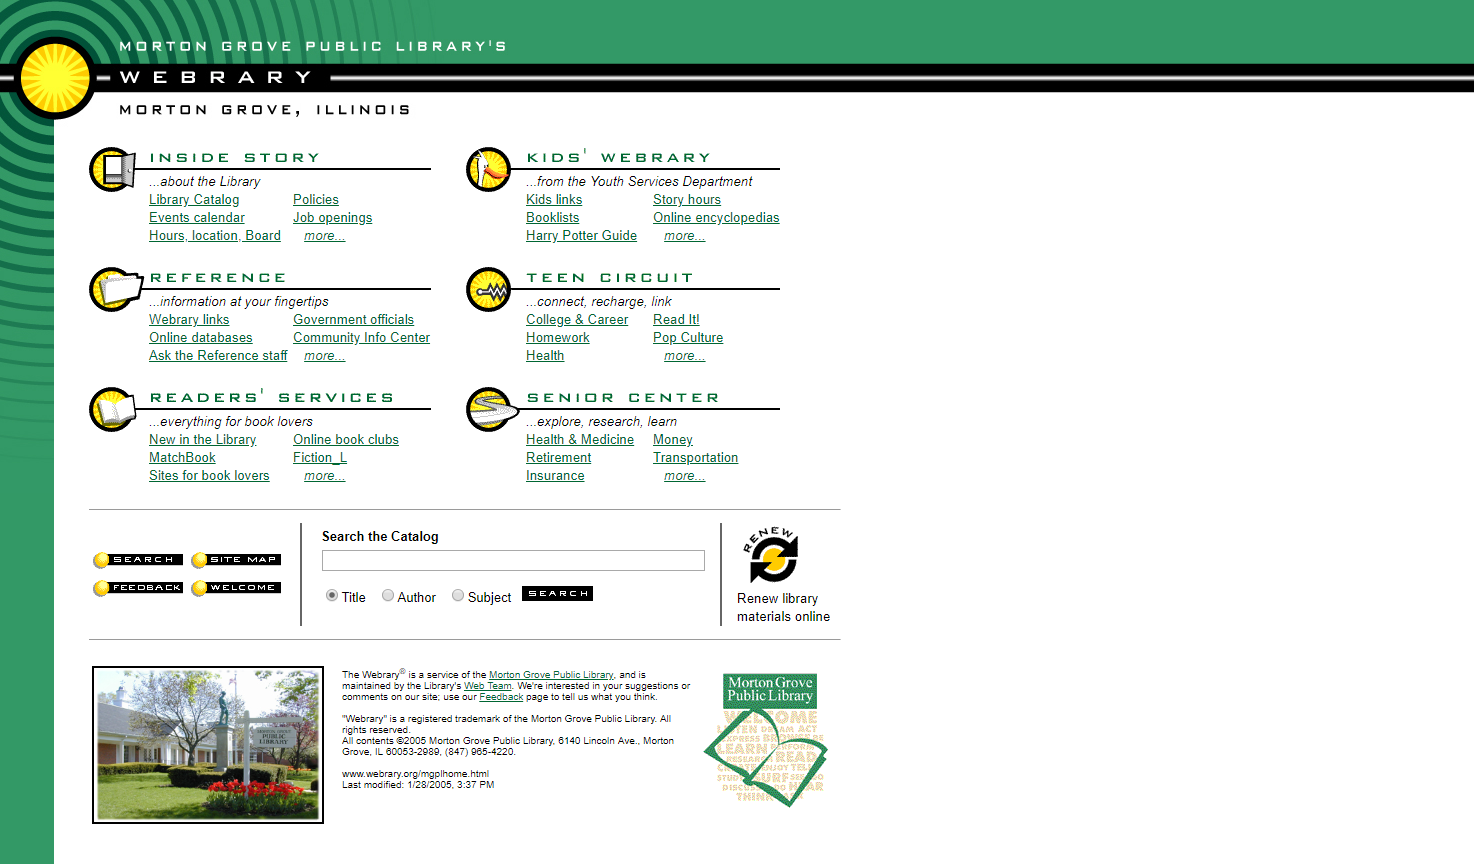 2005 website screenshot